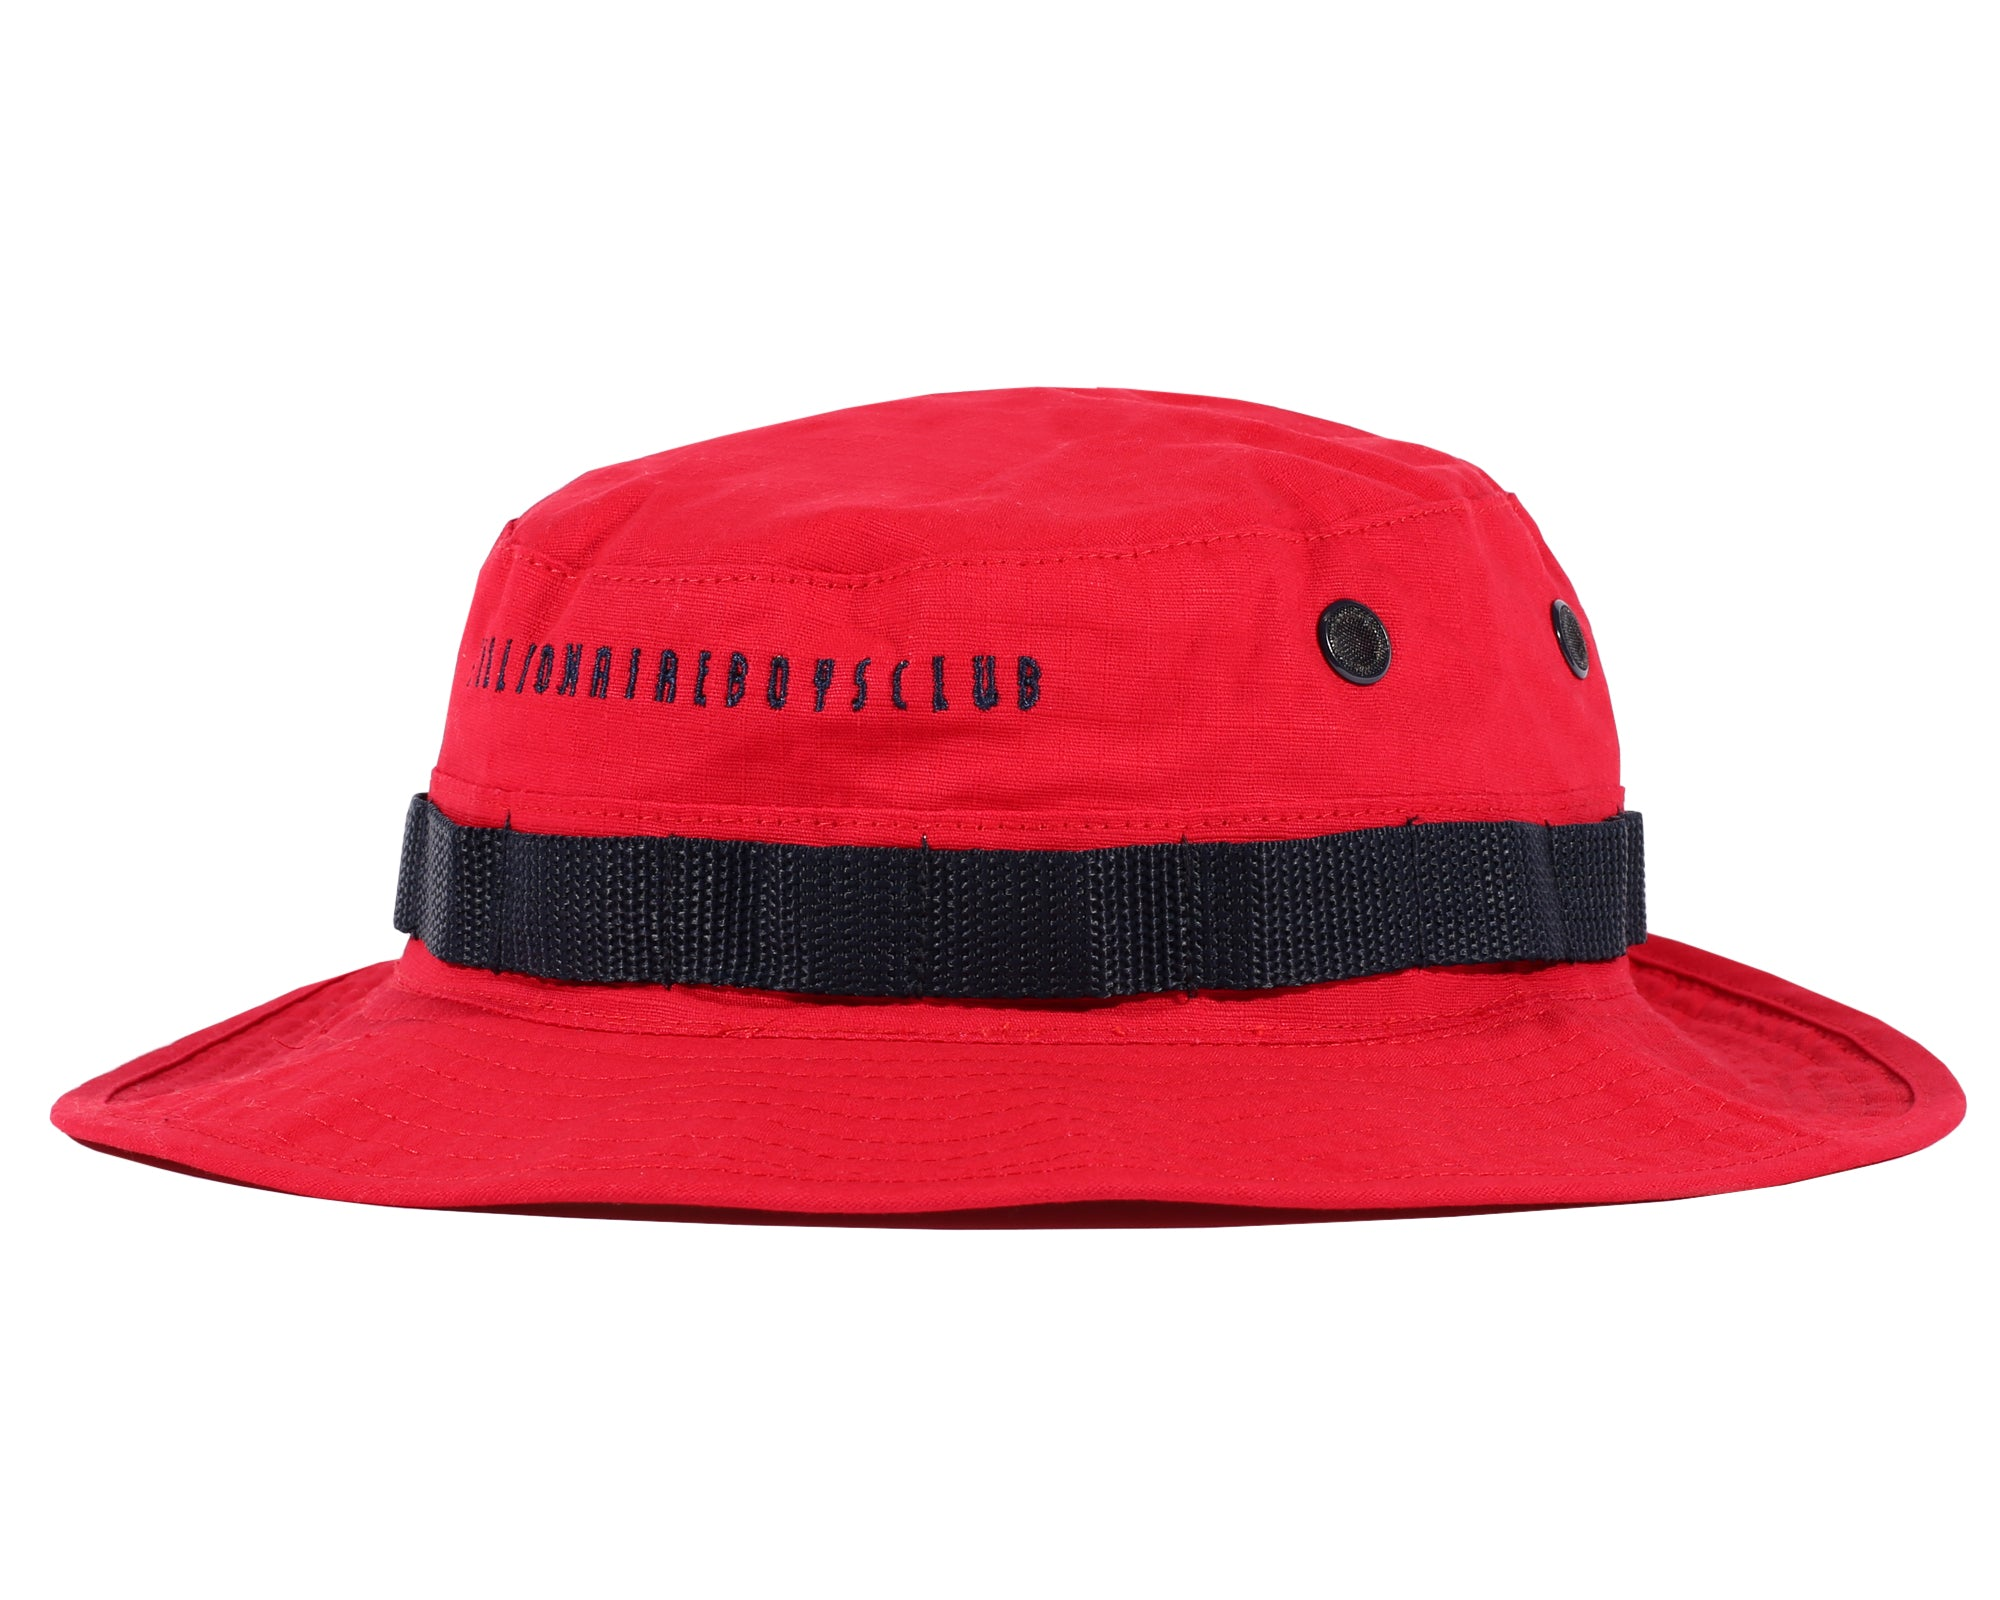 Billionaire Boys Club Spring  19 BOONIE HAT - RED  473c091ceb52